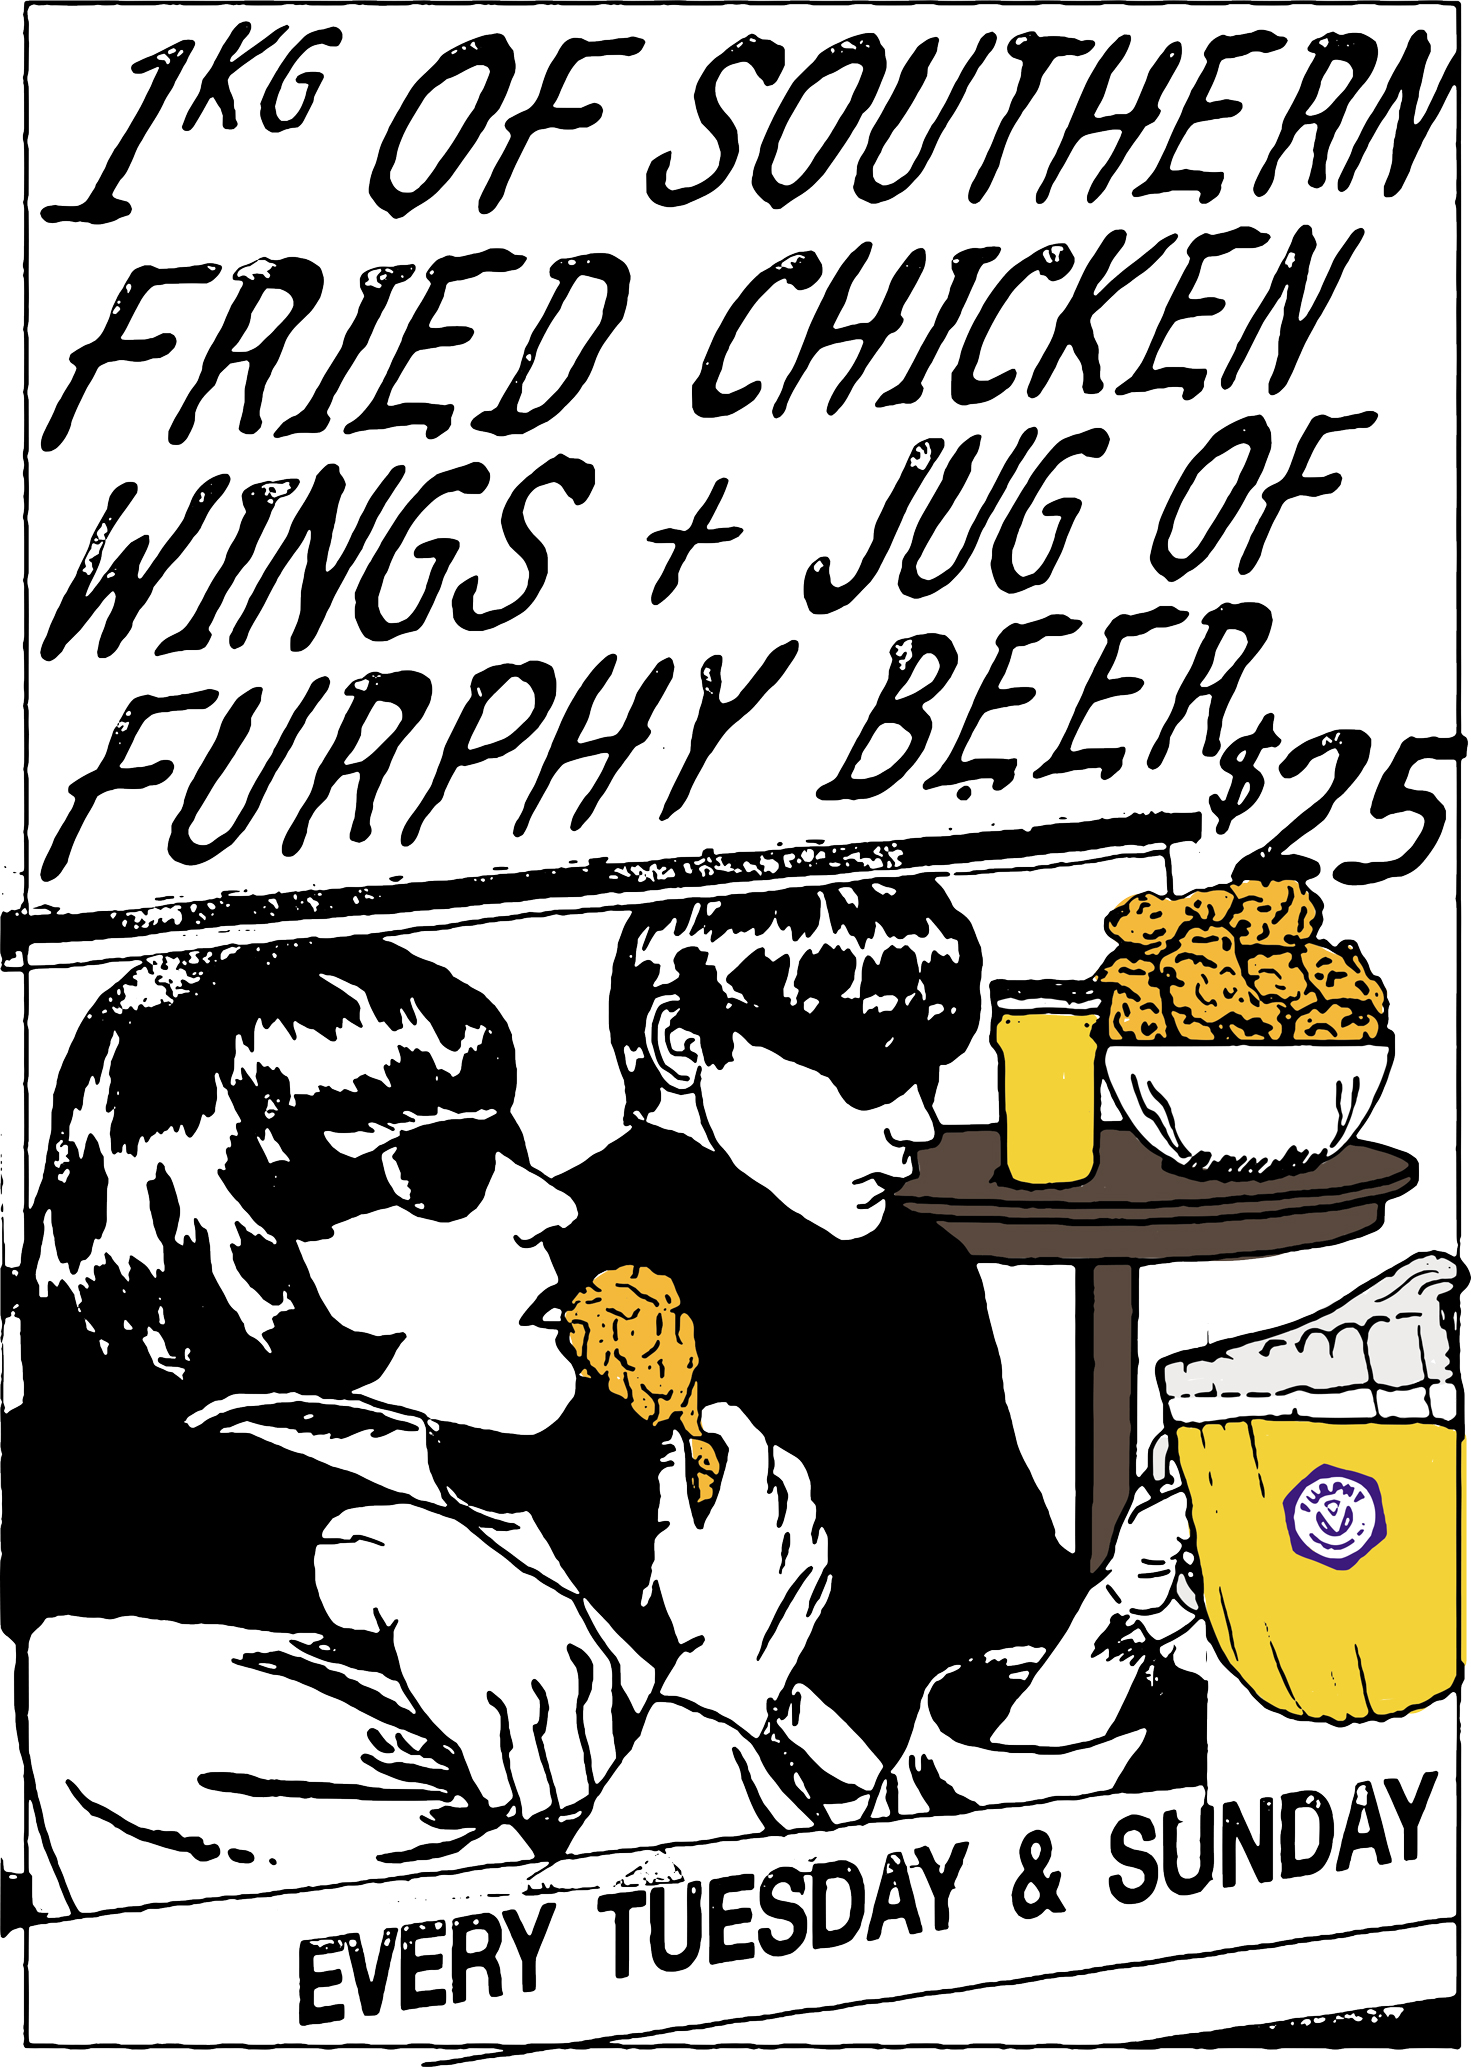 Sonic-Wings-and-Beer-Flyer.jpg